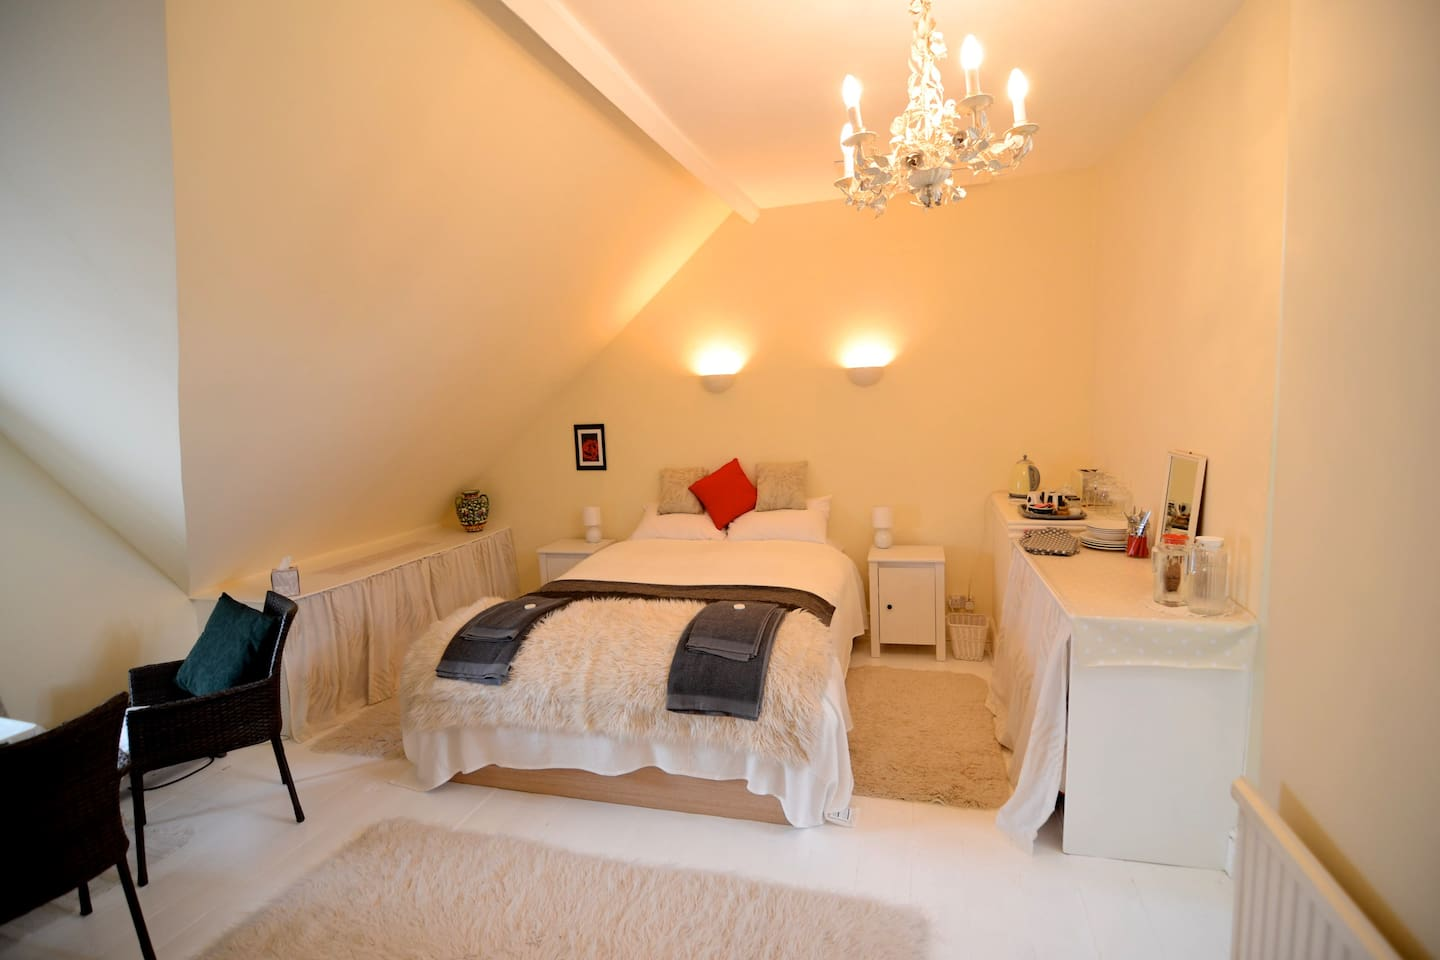 Delightful spacious room with King size bed